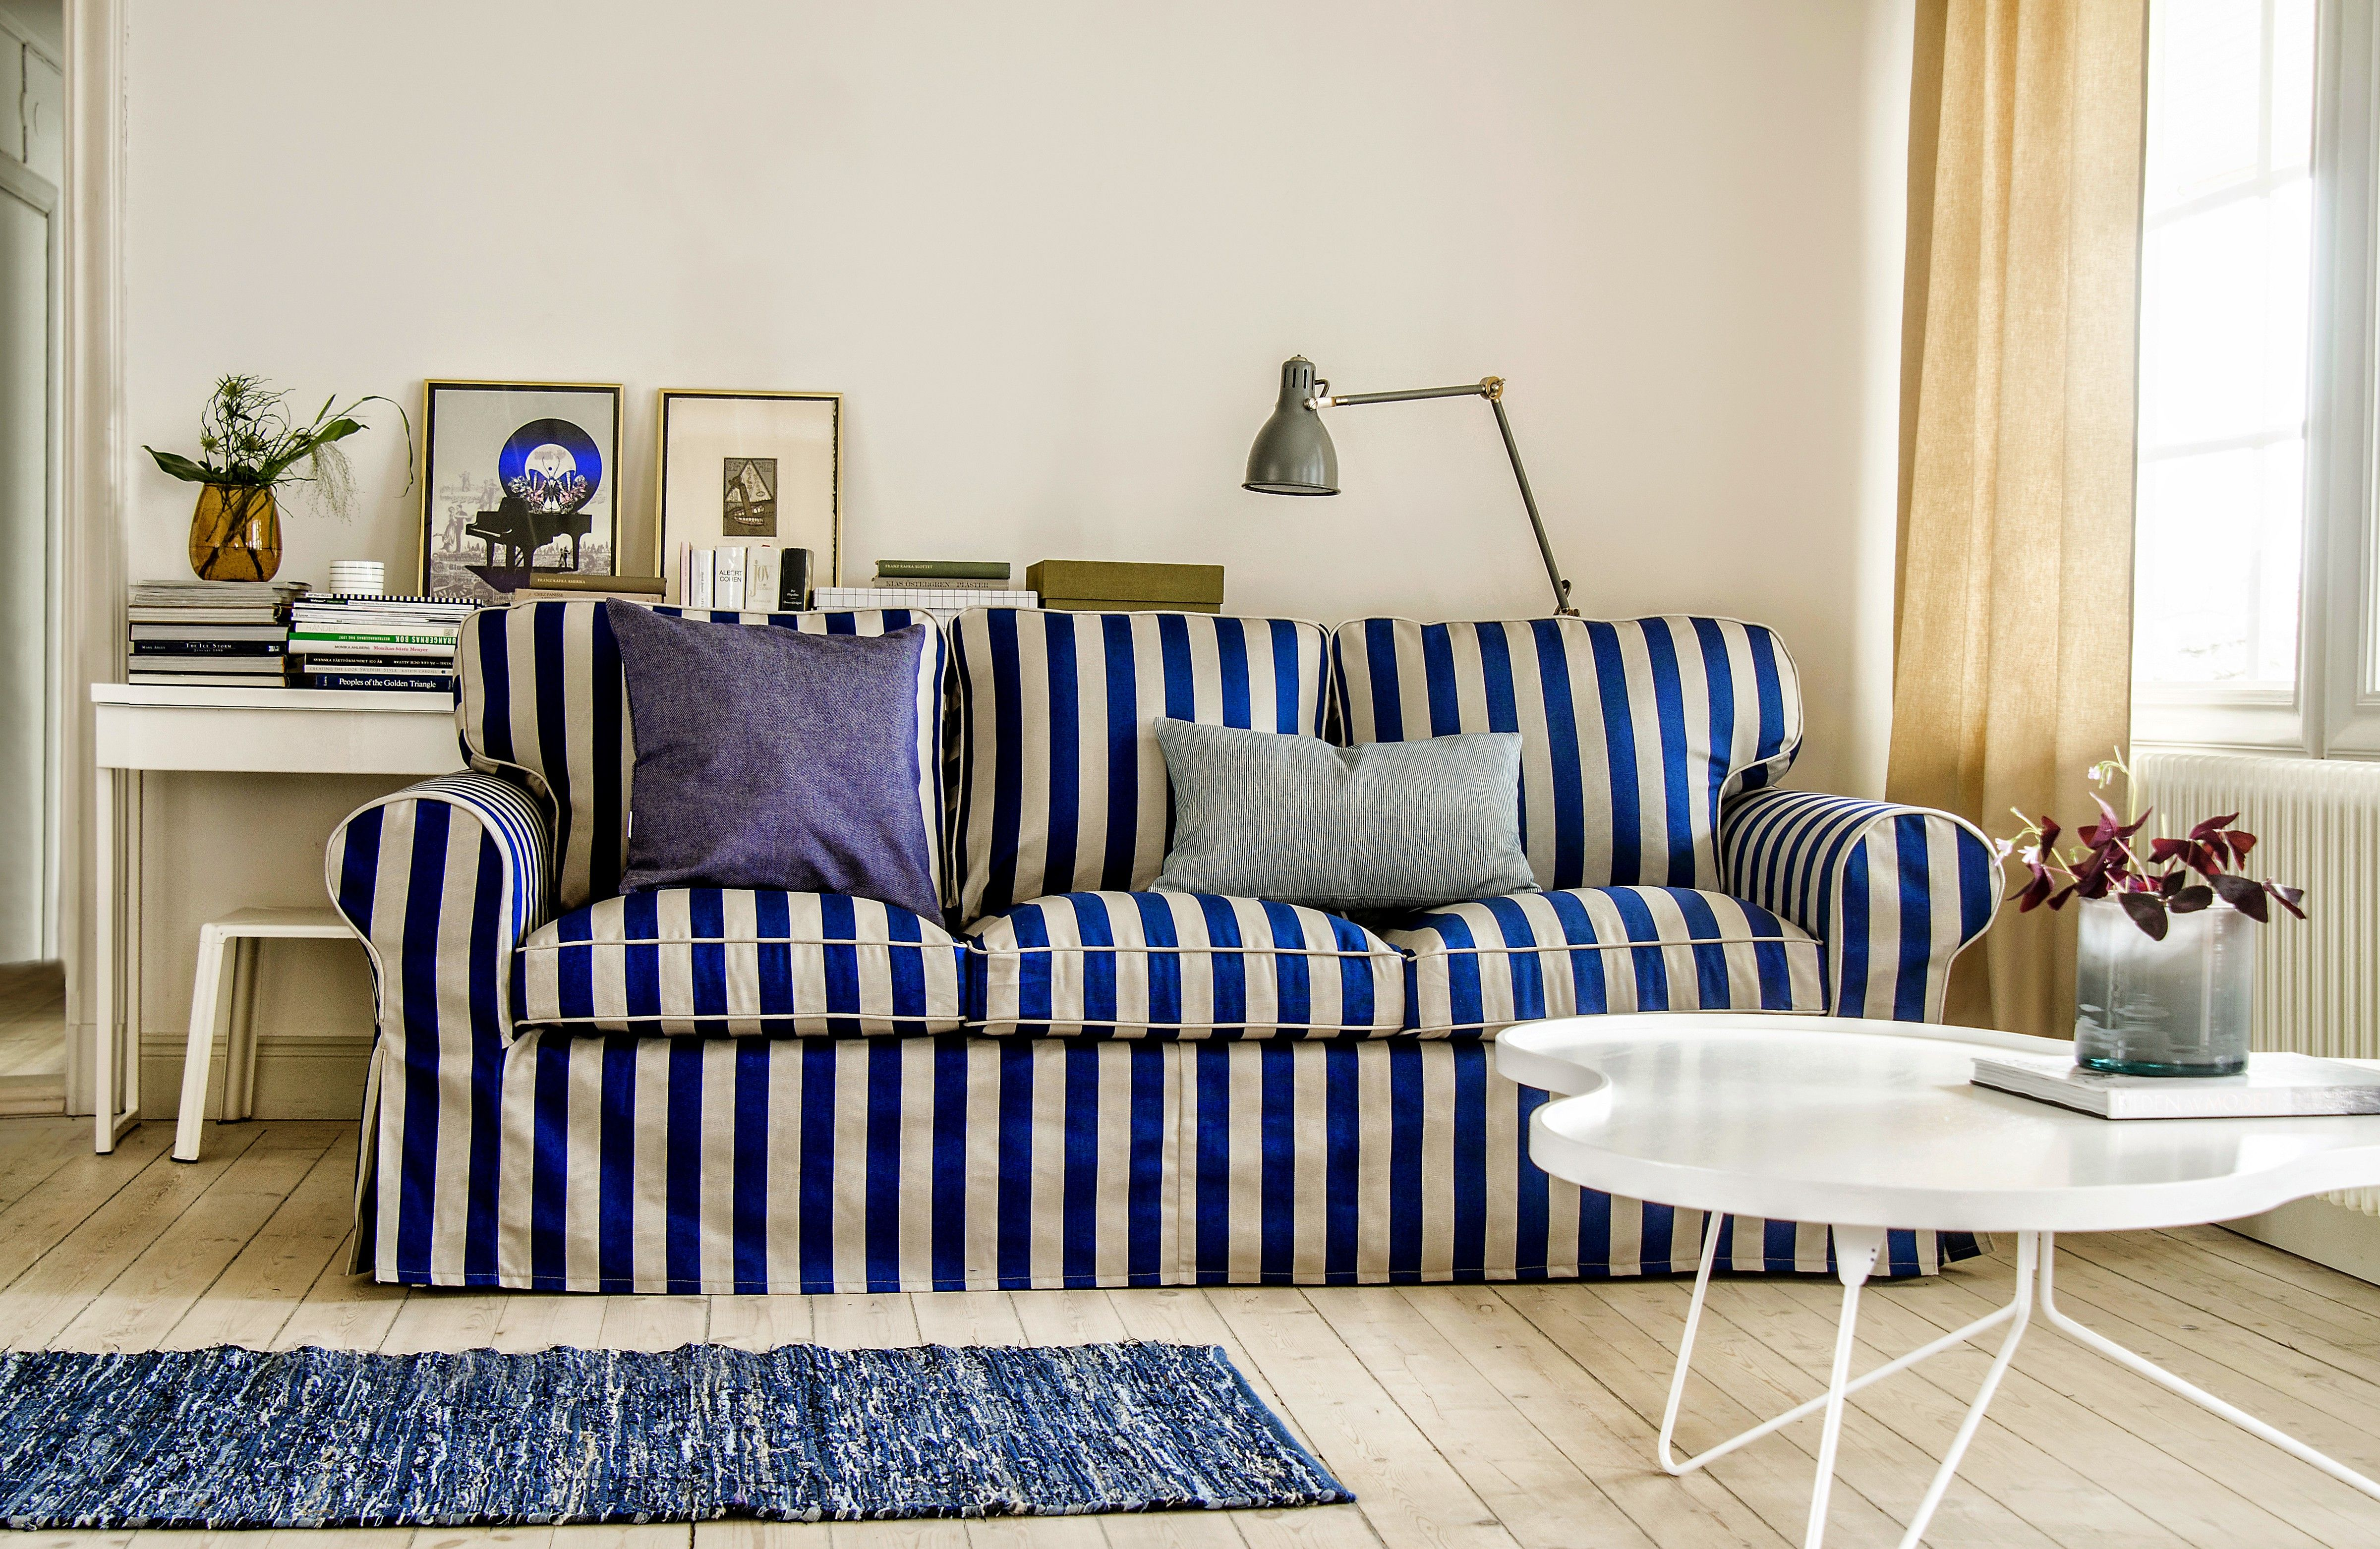 No 6 Ektorp 3 Seater Sofa Bed Cover In Deep Navy Blue Sand Beige Stockholm Stripe Ikea Sofa Home Decor 3 Seater Sofa Bed